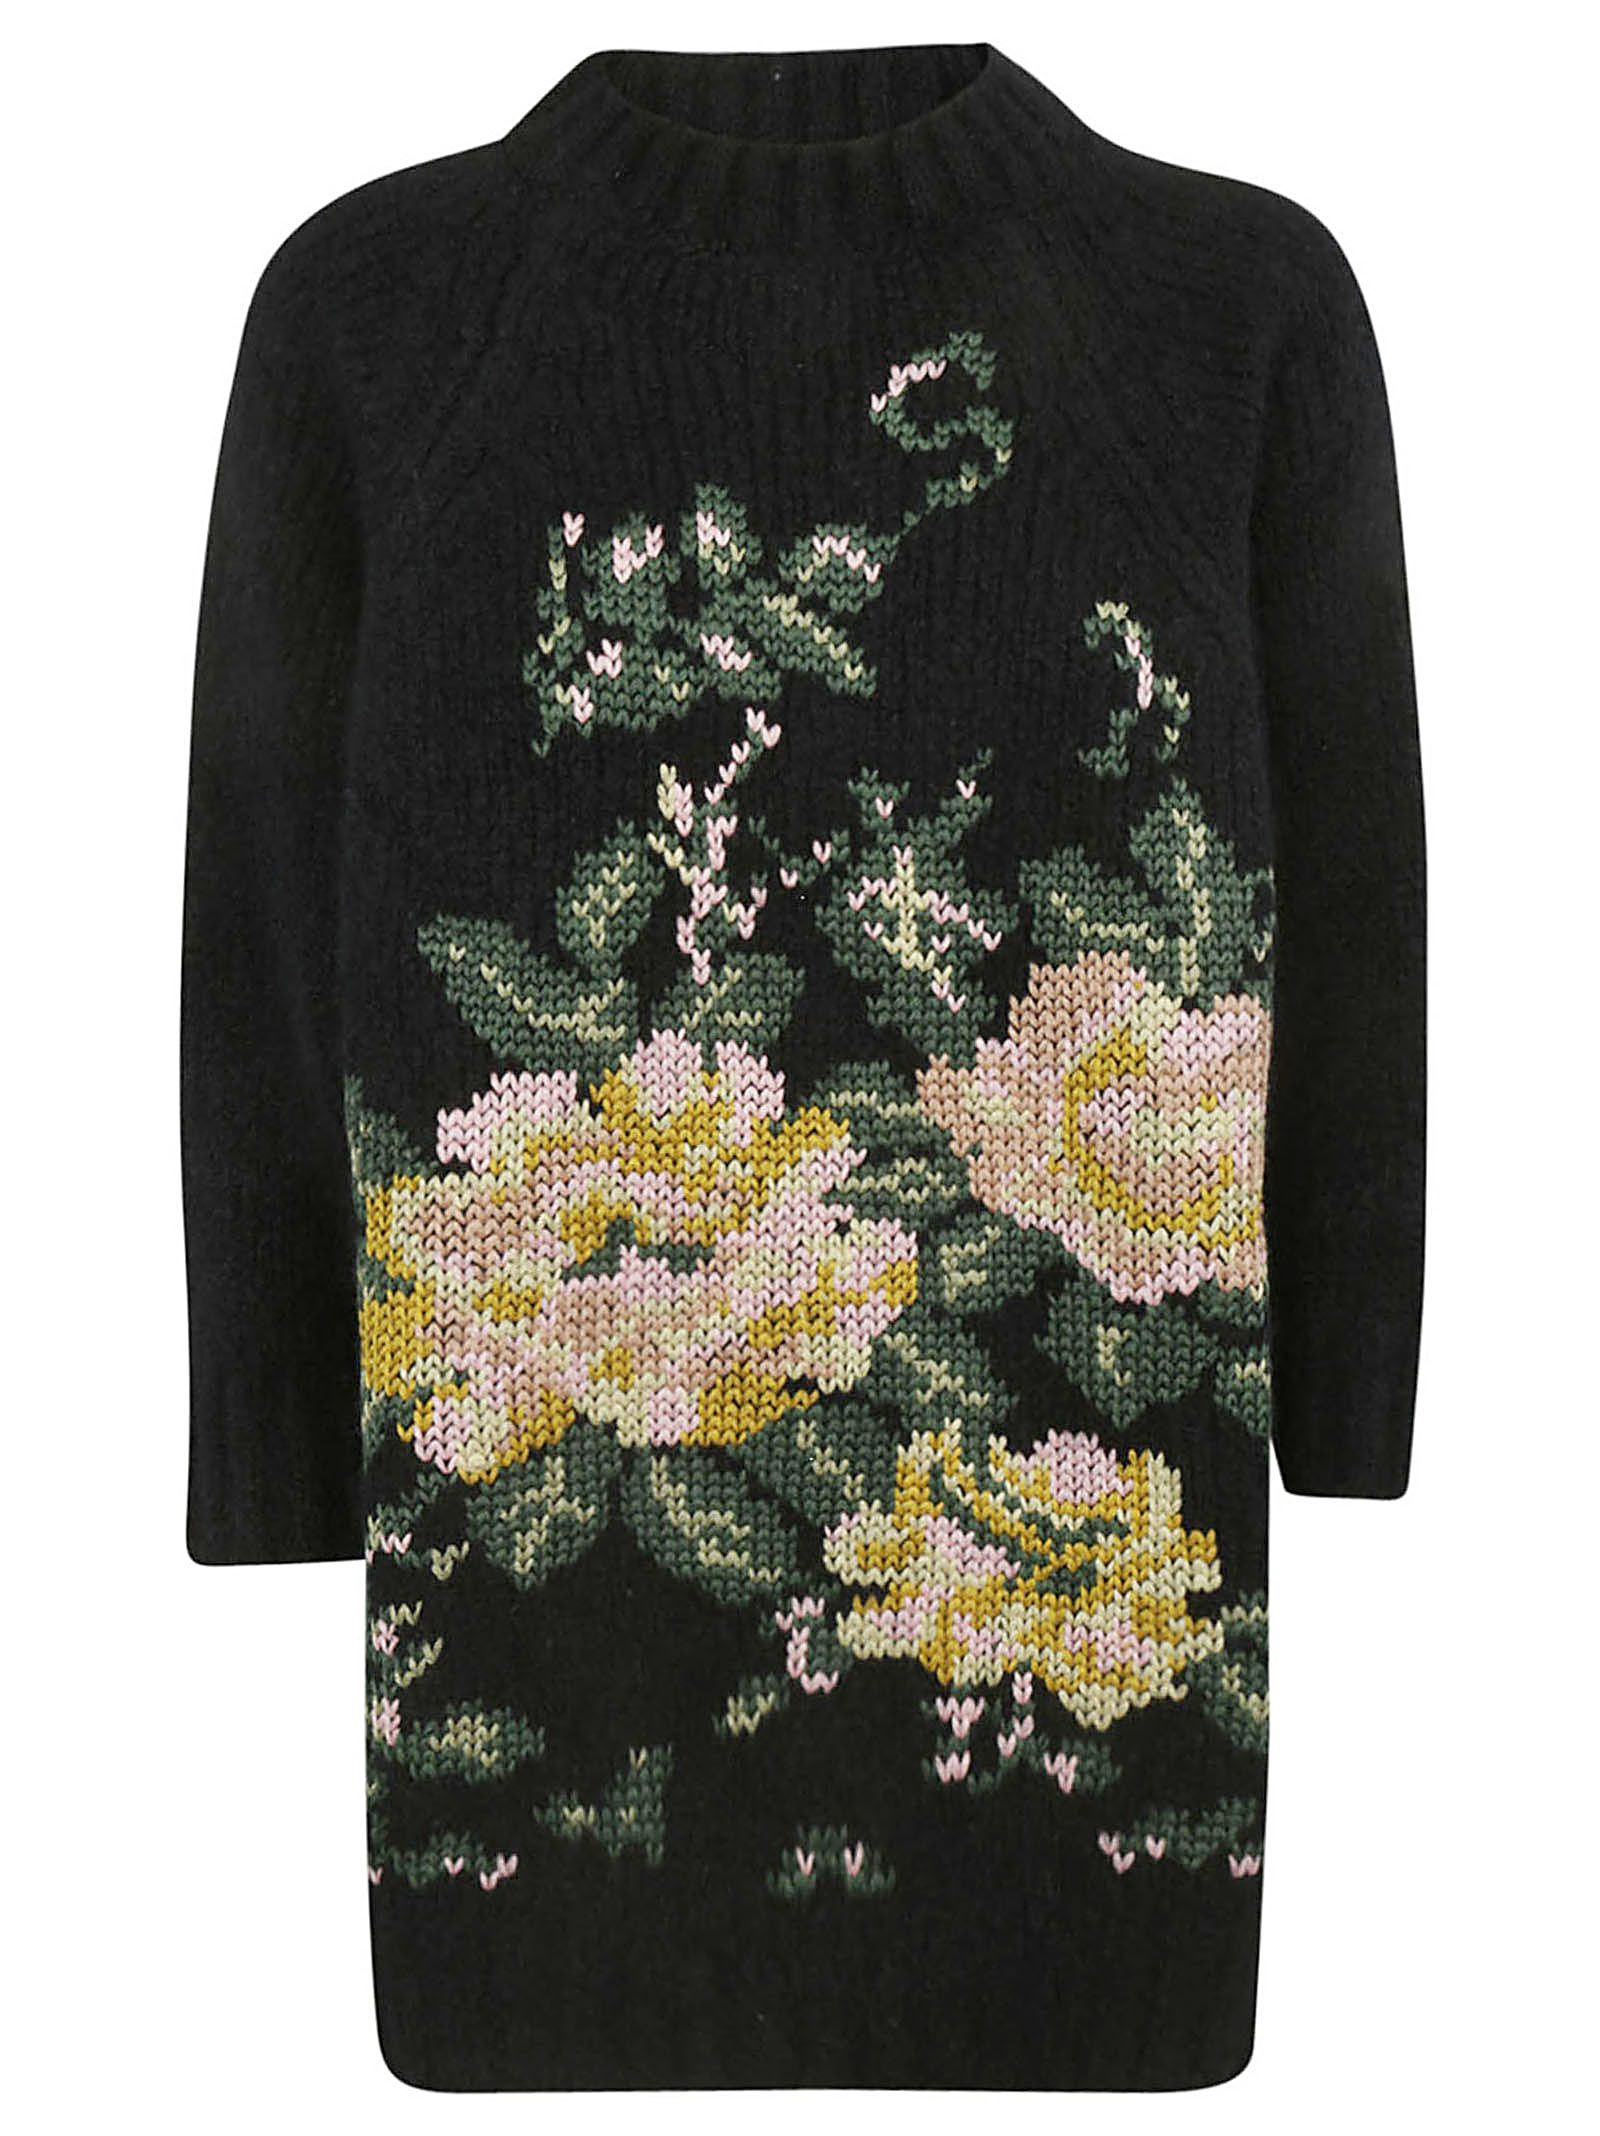 SAVERIO PALATELLA Knitted Intarsia Sweater in Black